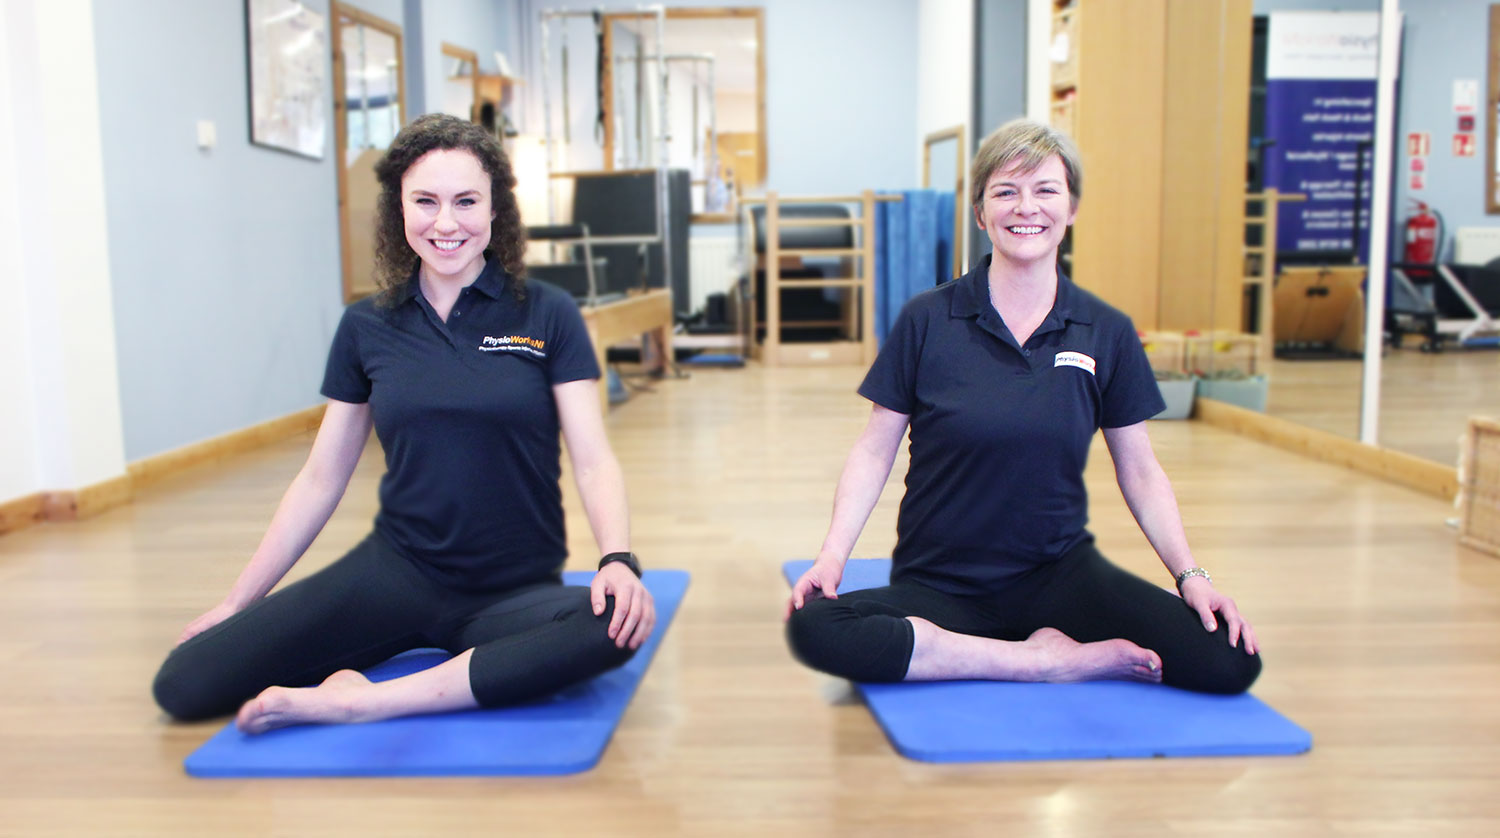 Pilates Classes at PhysioWorks Belfast